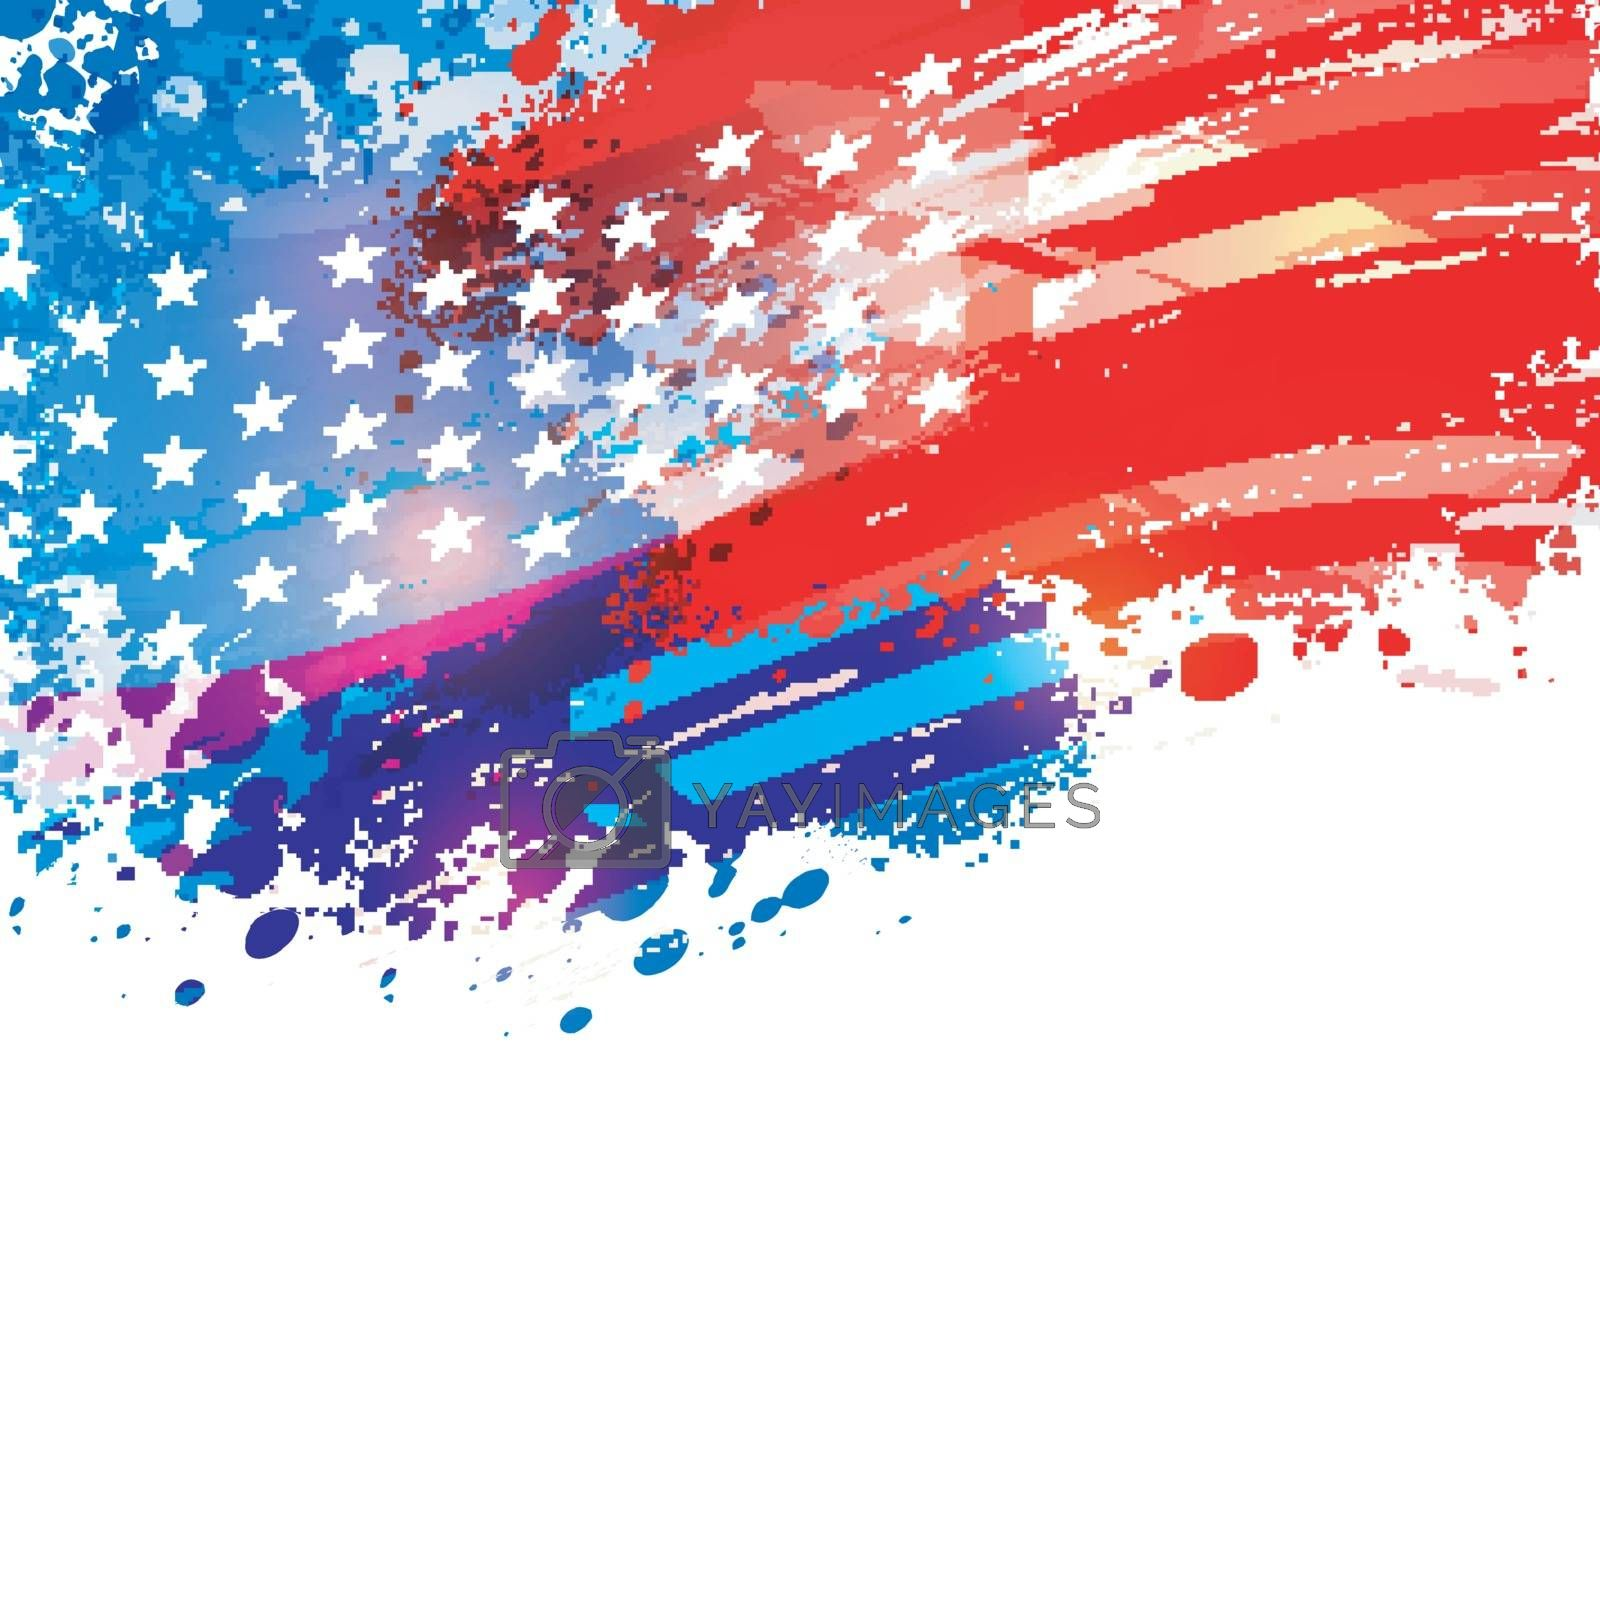 American Flag colors background with abstract brush strokes and splash for 4th of July, Independence Day celebration.